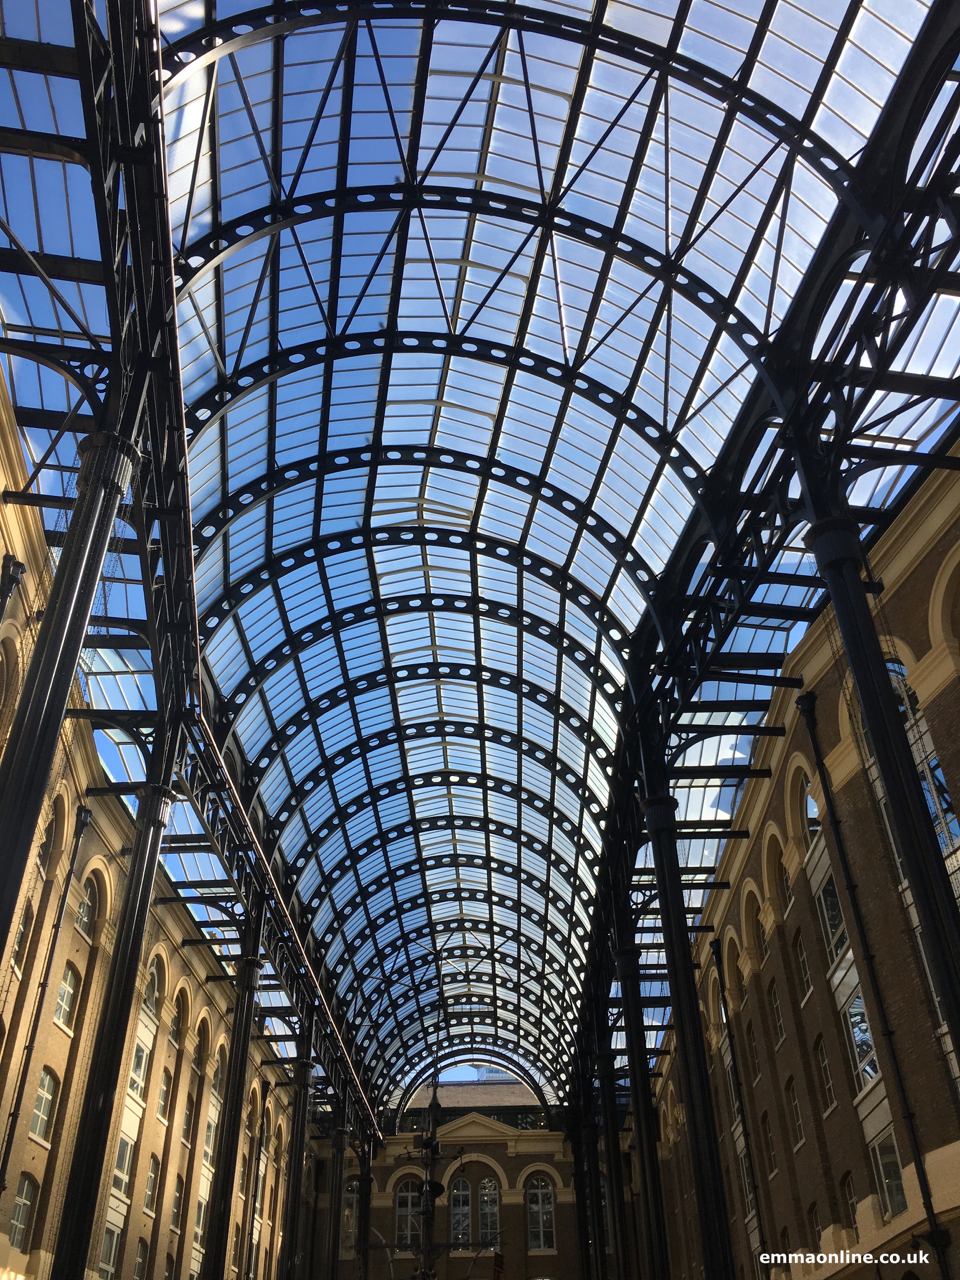 Looking up at the ceiling of the Hay's Galleria